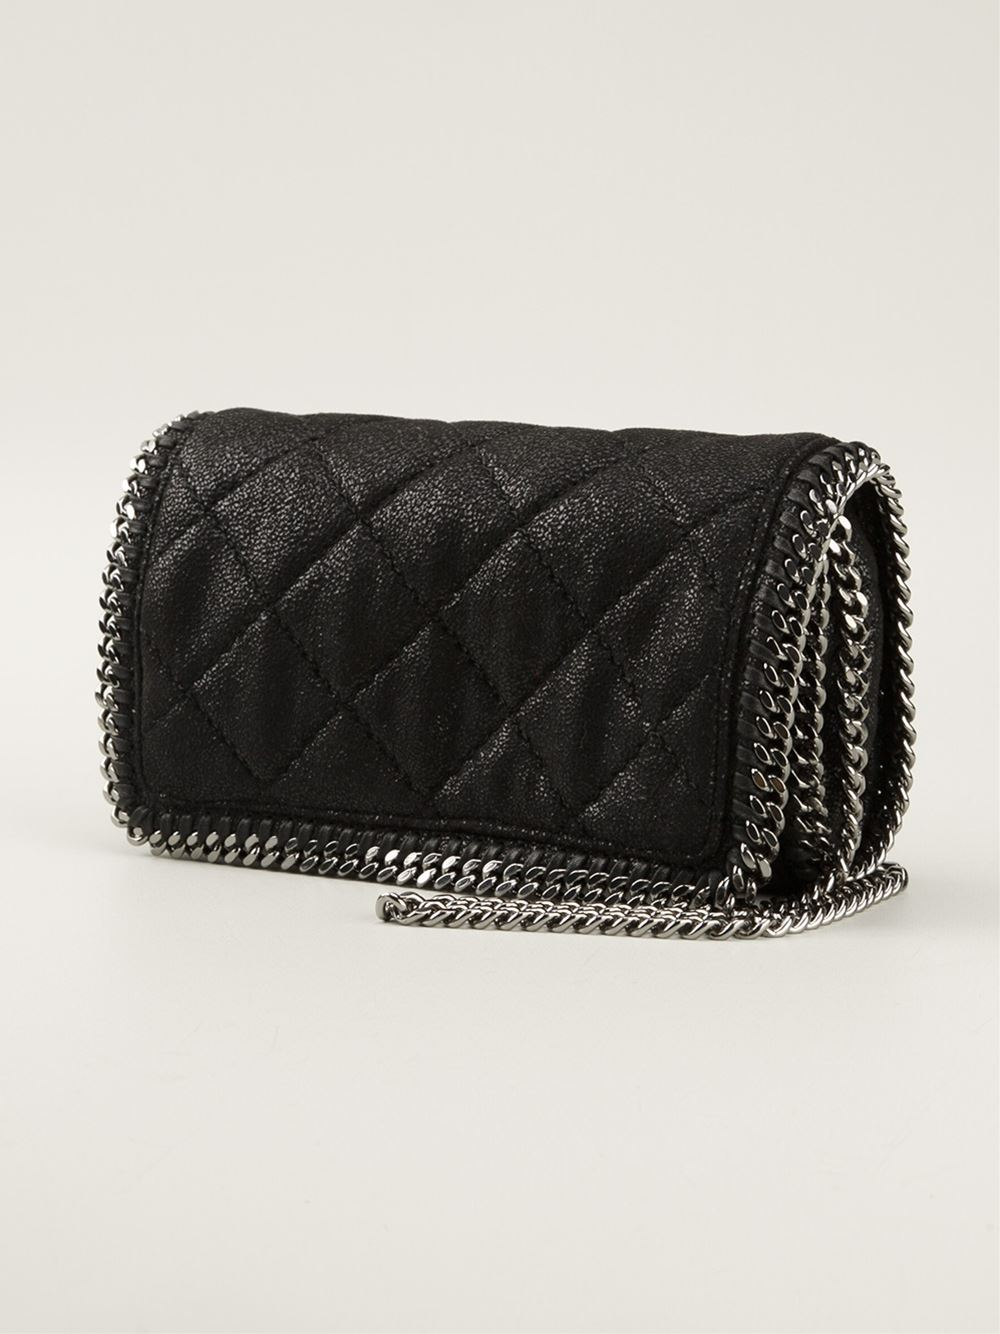 Lyst - Stella mccartney Quilted Falabella Cross Body Bag in Black : stella mccartney quilted bag - Adamdwight.com